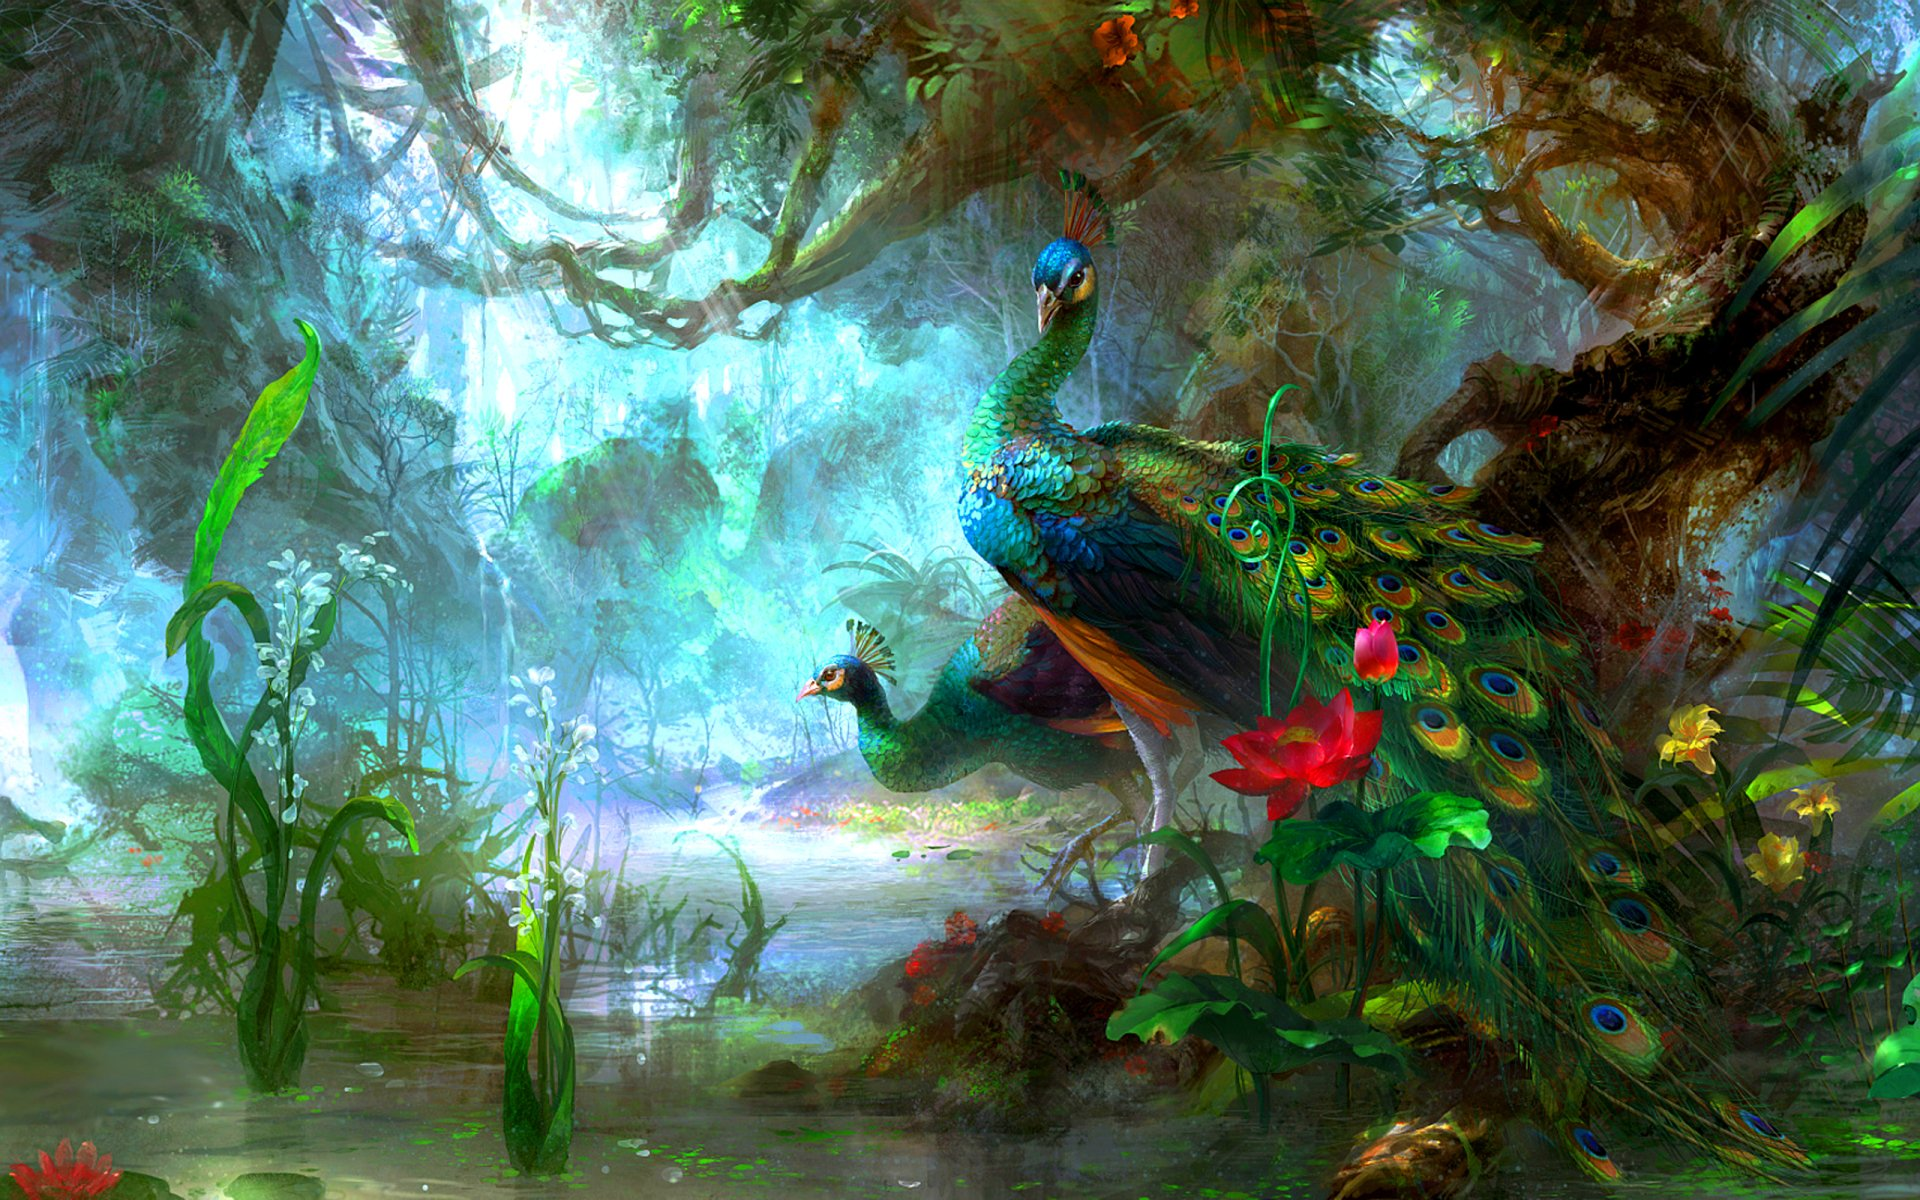 Animal - Peacock  Peafowl Colors Colorful Tree Flower Artistic Bird Forest Green Wallpaper